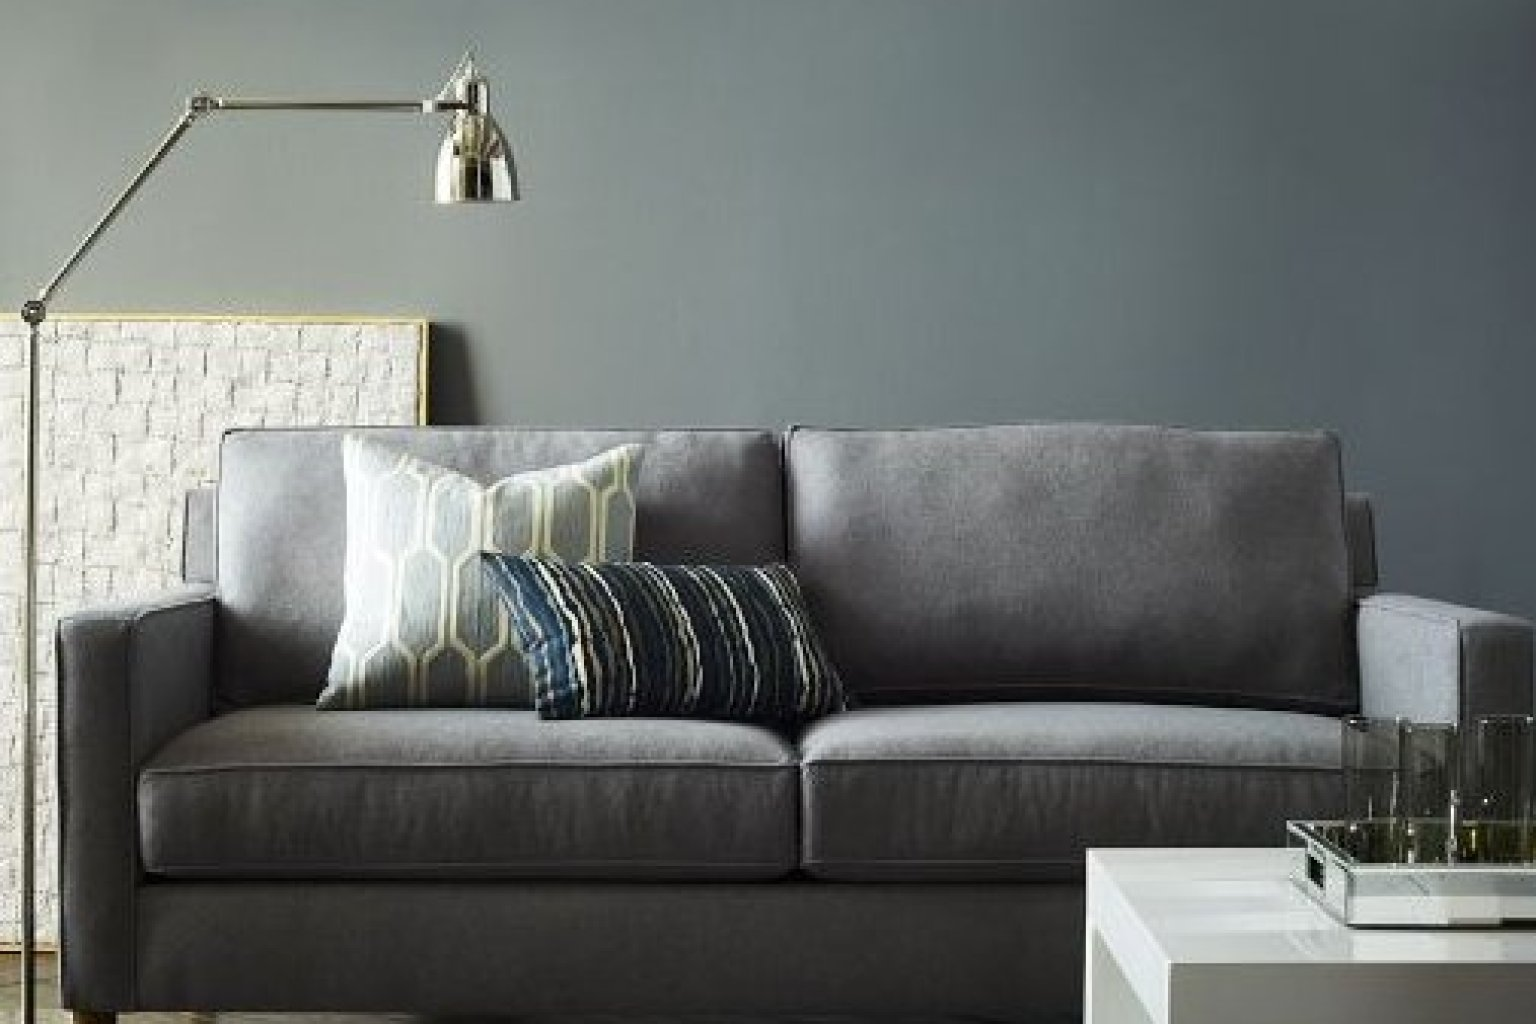 6 couches for small apartments that will actually fit in your space photos - Small space sectional couches paint ...